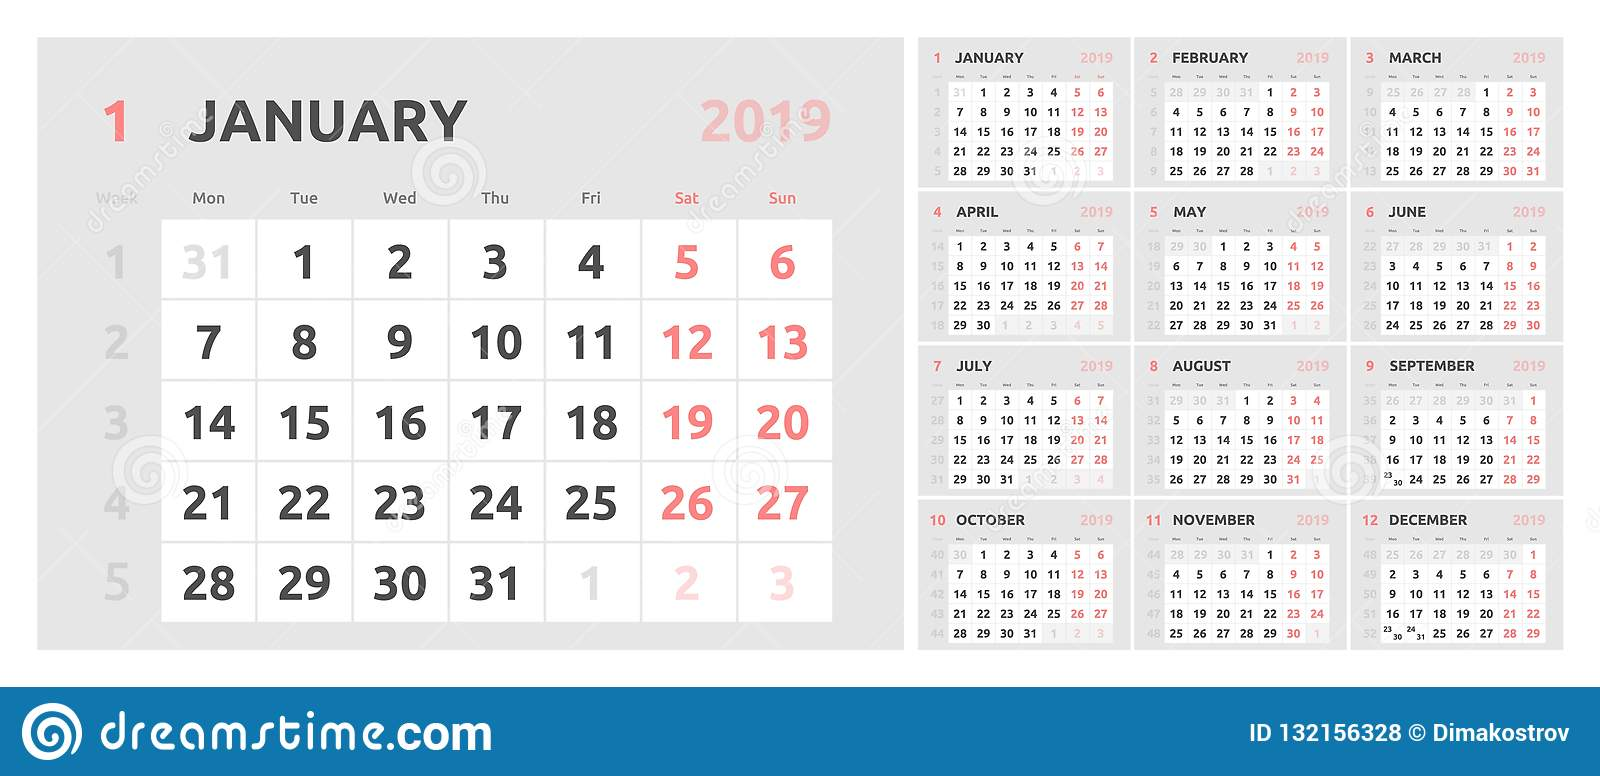 Calendar Pages To Print 2019.Calendar Design For 2019 Week Starts On Monday Stock Vector